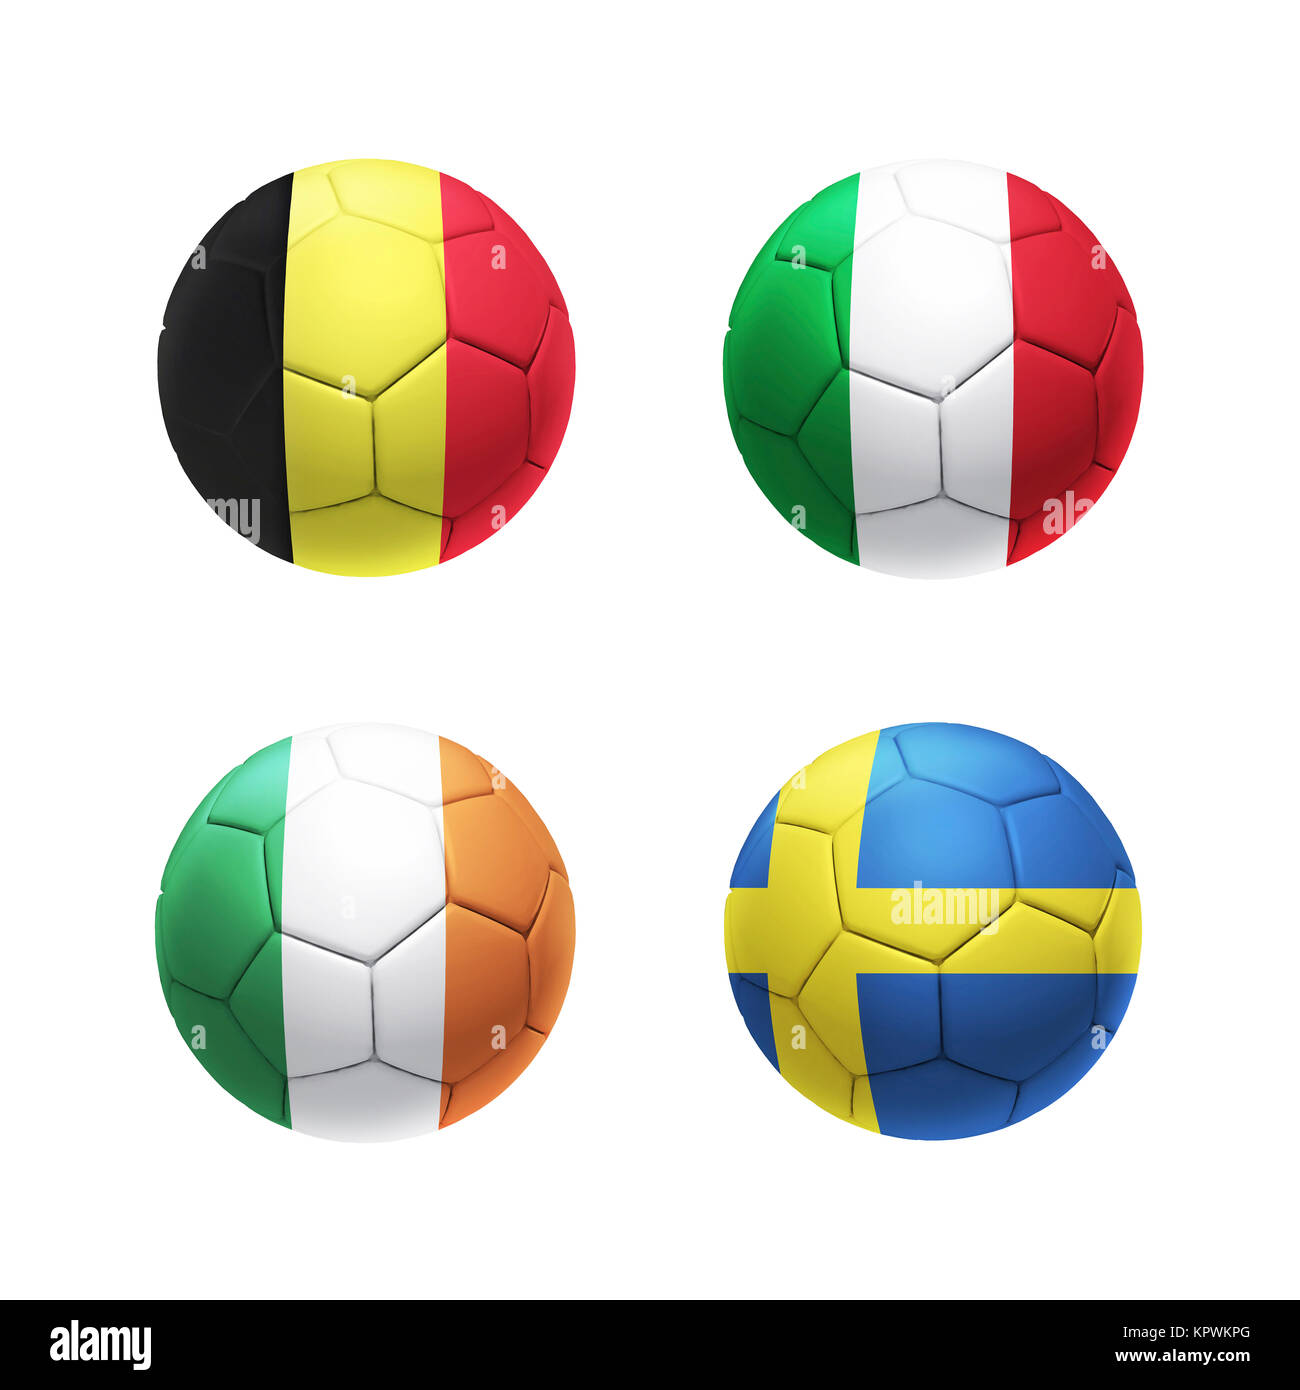 3D soccer ball with group E teams flags - Stock Image